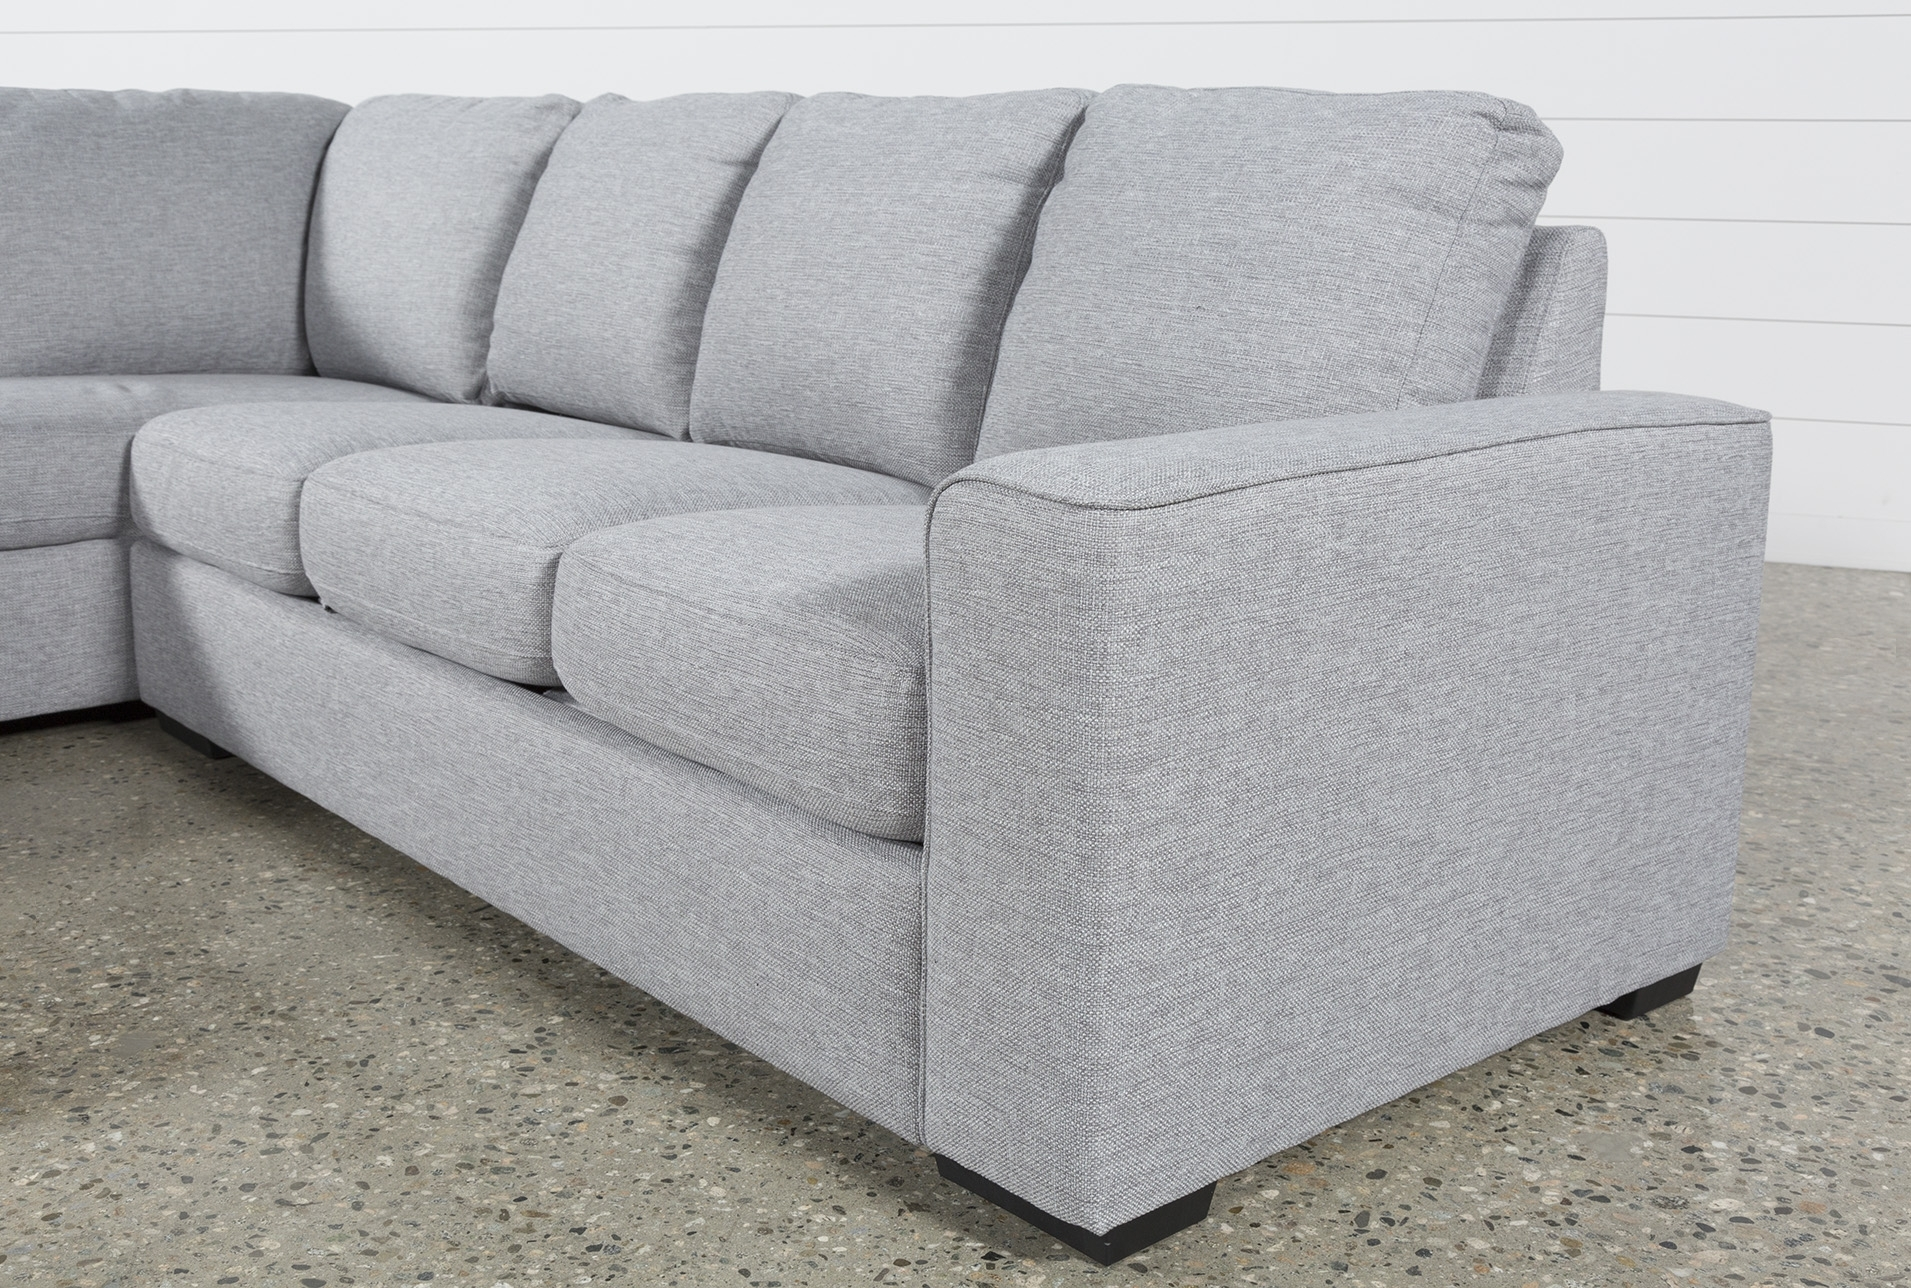 Lucy Grey 2 Piece Sectional W/laf Chaise | Products Throughout Lucy Grey 2 Piece Sectionals With Raf Chaise (Image 15 of 25)